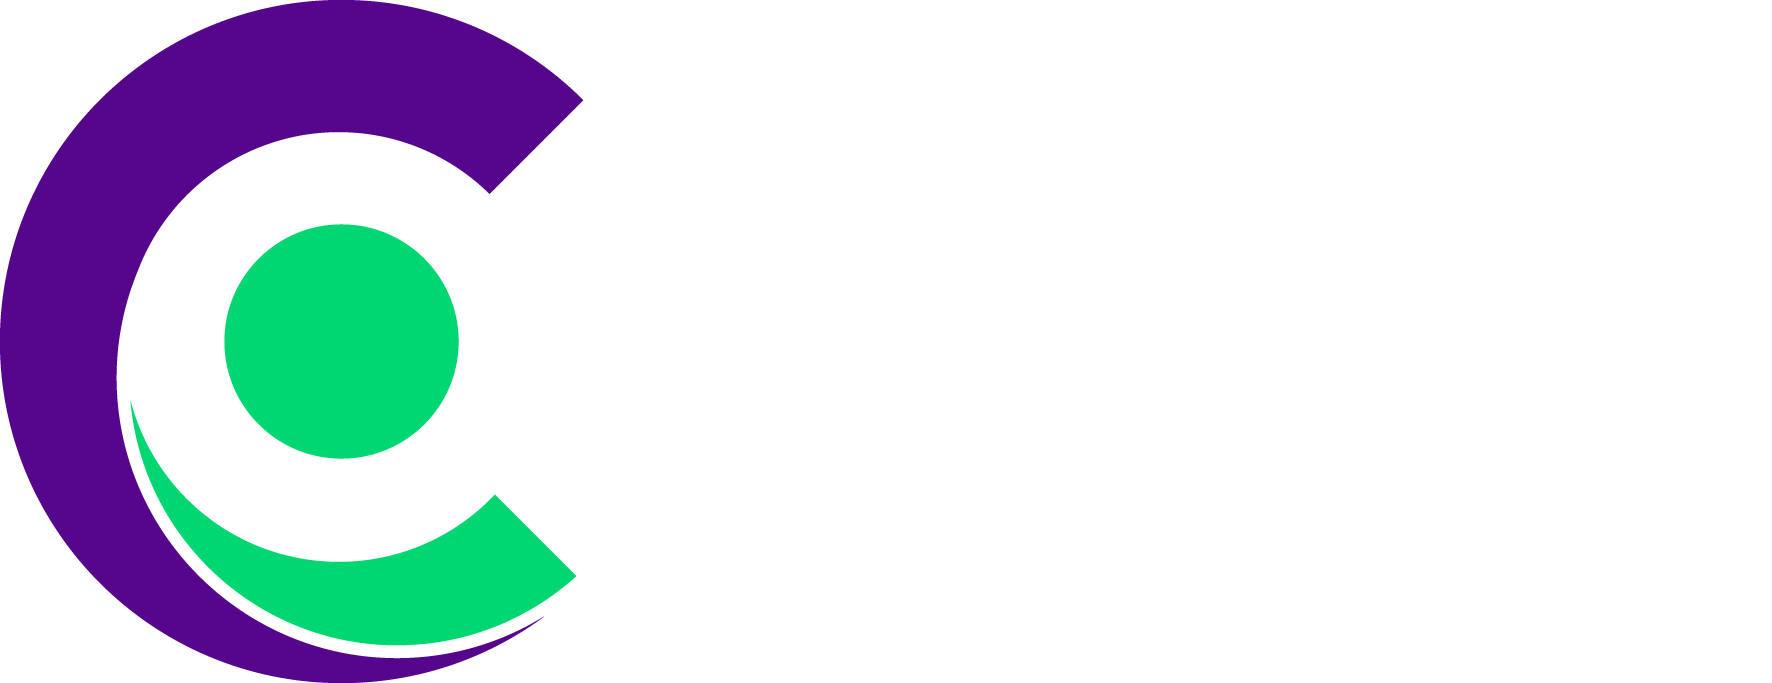 2018 Curling World Cup 2 logo